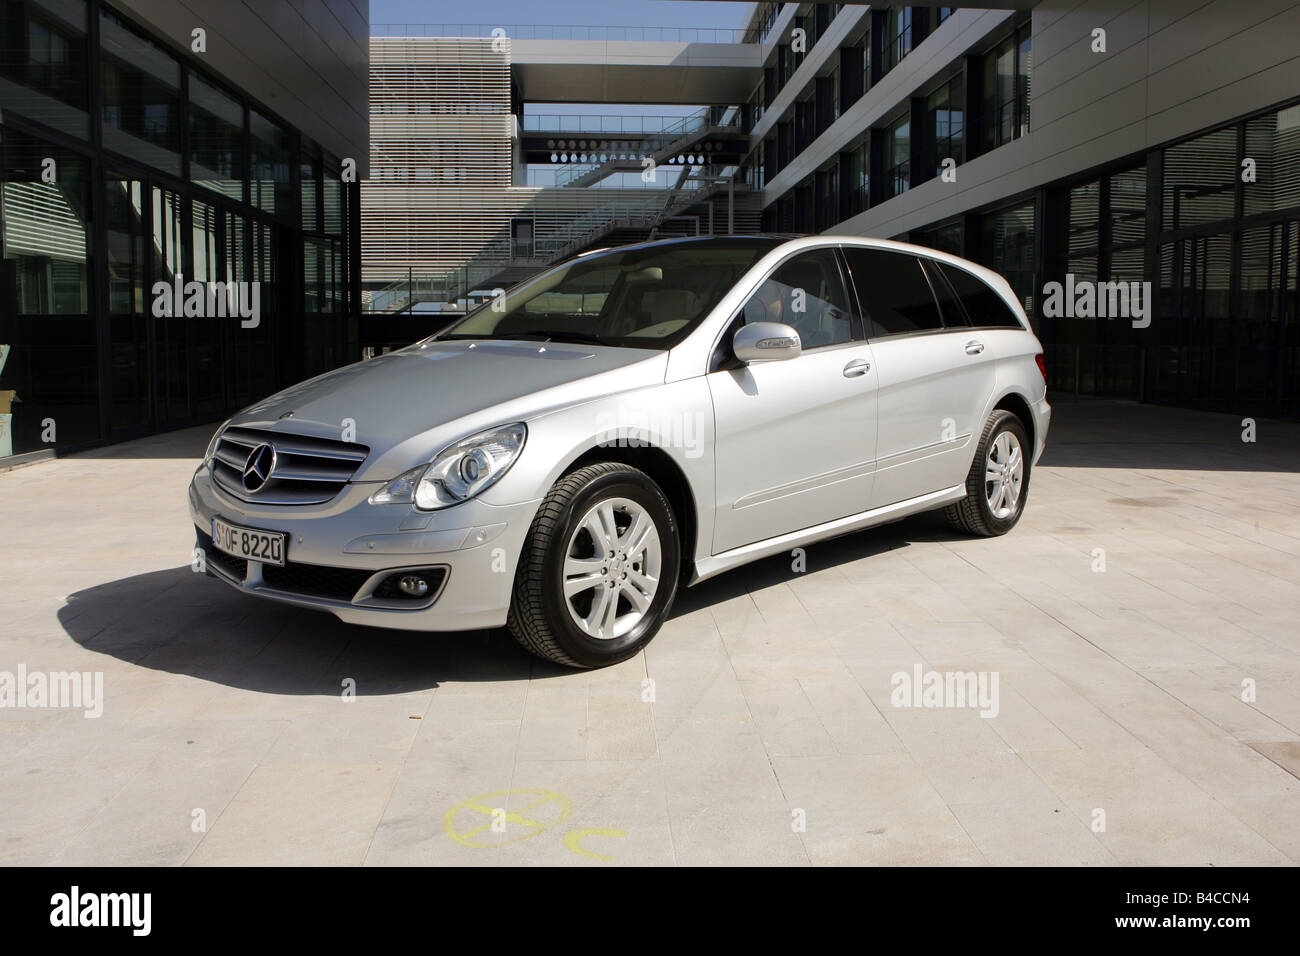 car mercedes r 500 r klasse model year 2005 silver van stock photo royalty free image. Black Bedroom Furniture Sets. Home Design Ideas